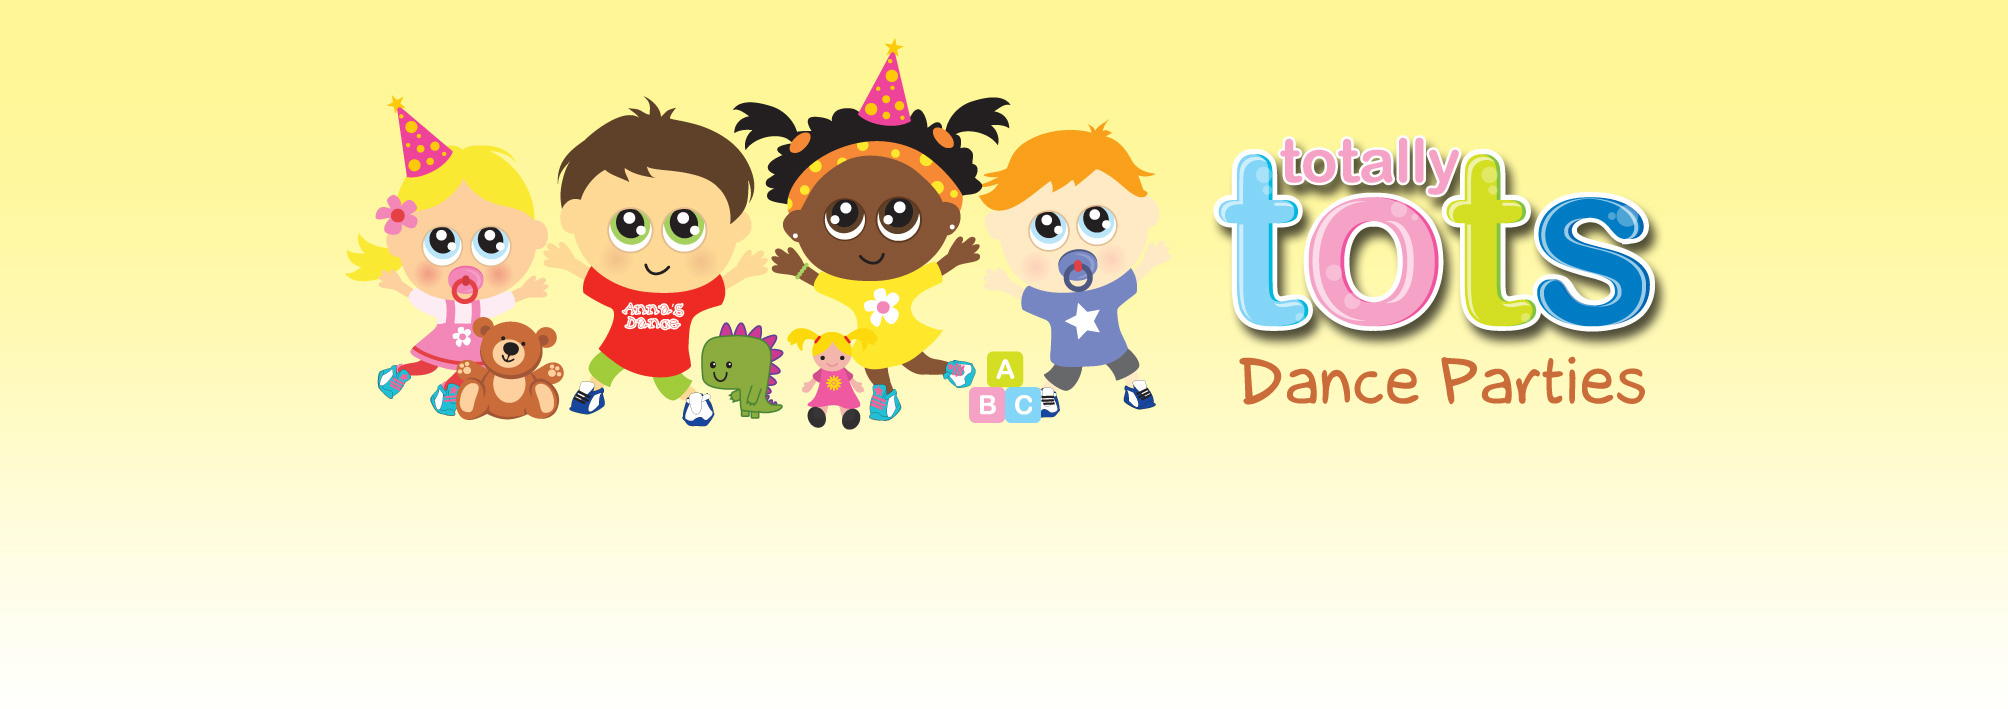 Totally Tots Dance Parties